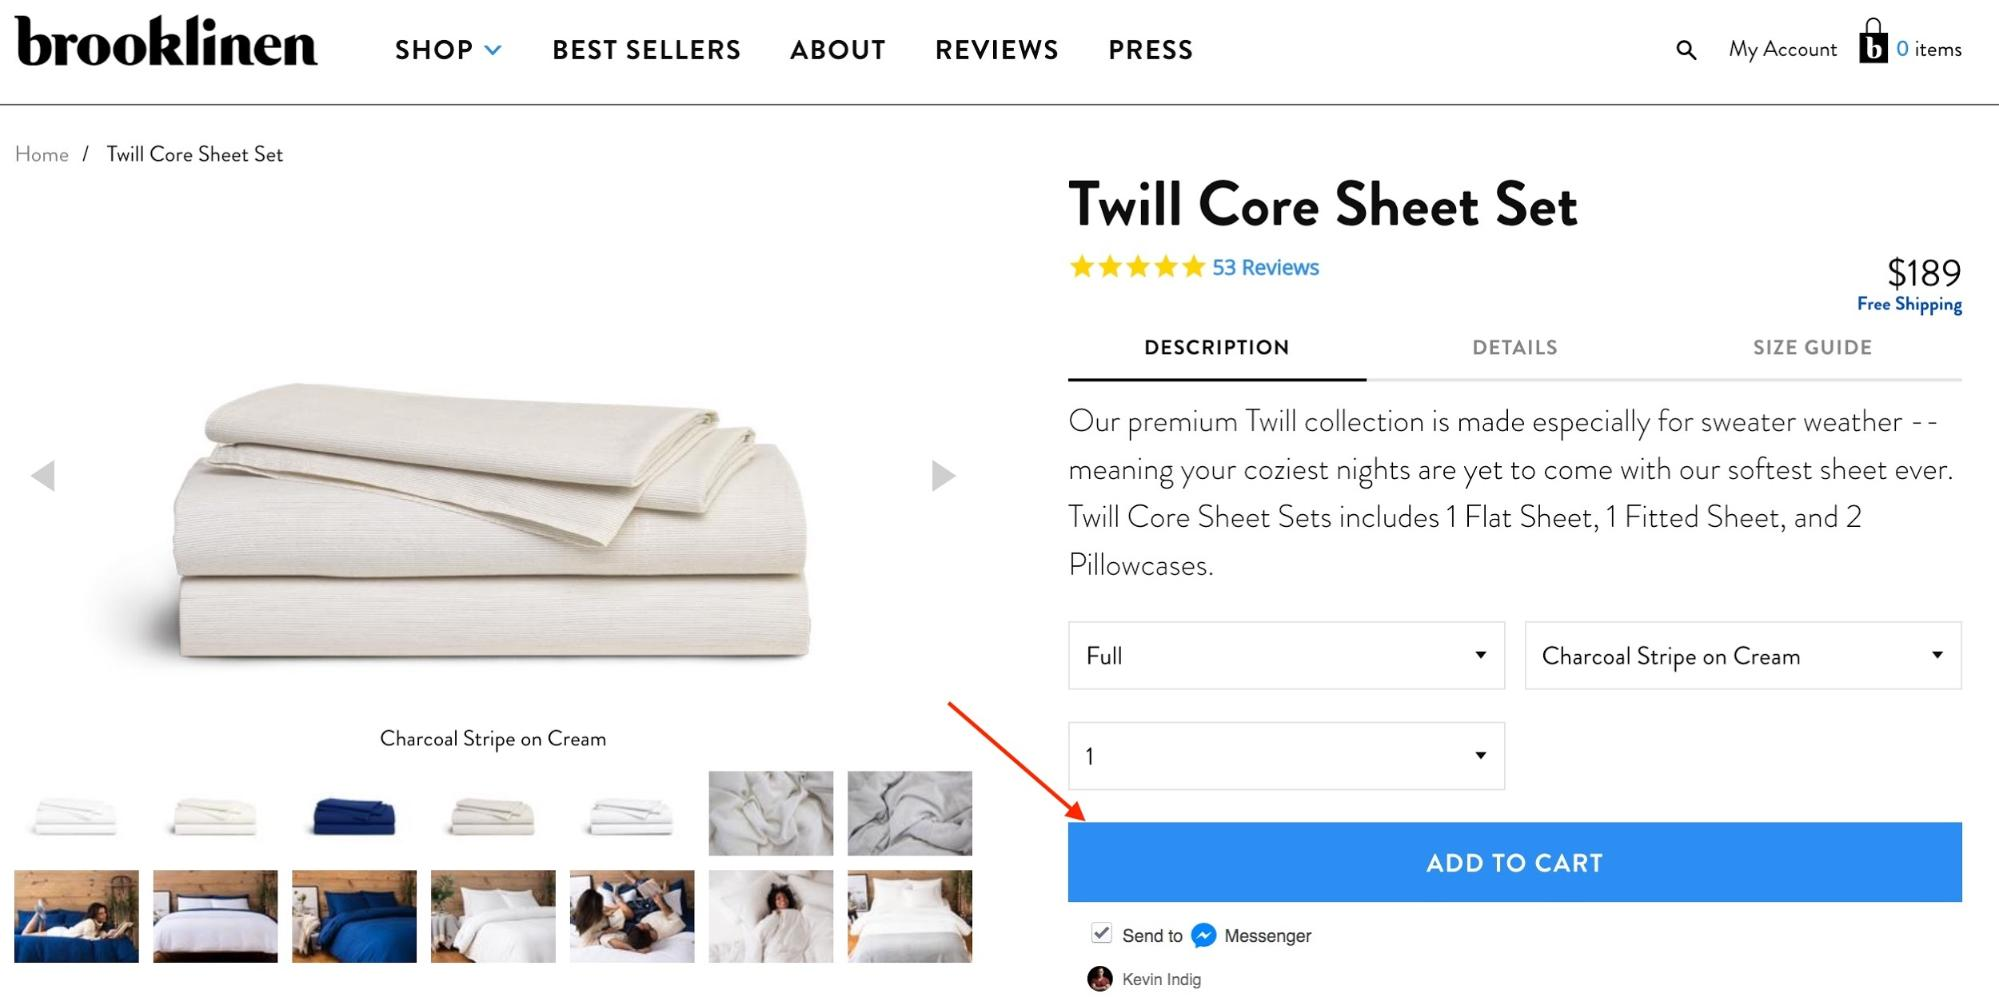 Screenshot showing an ecommerce product page